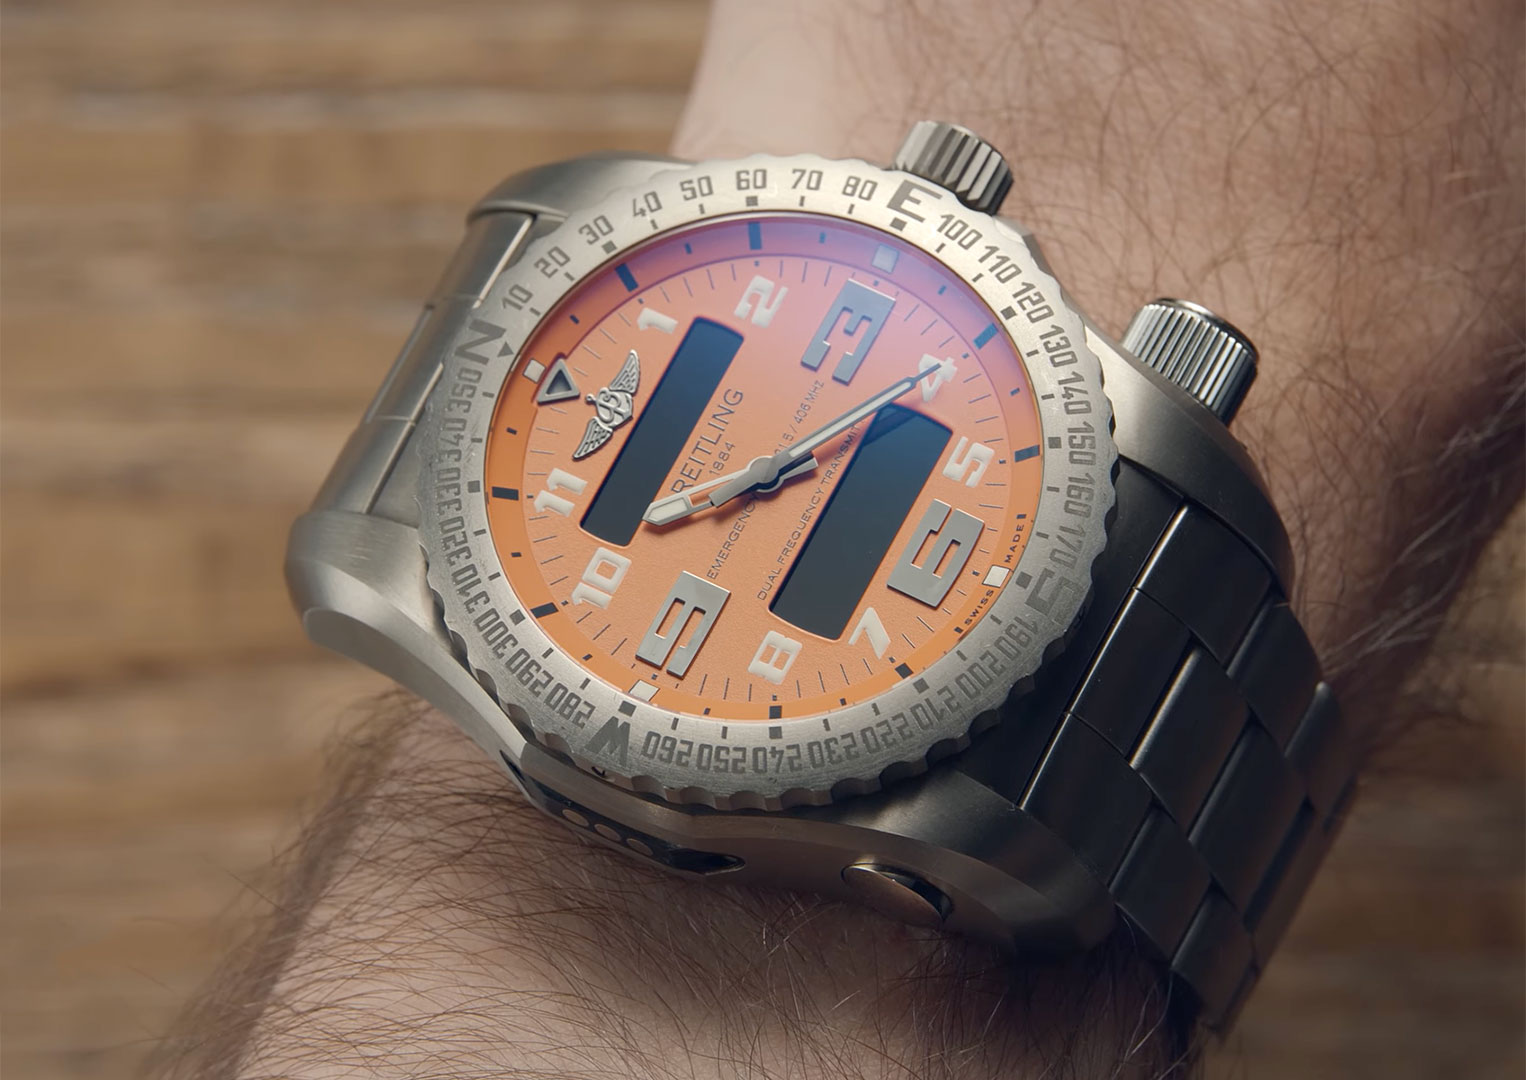 The Breitling Emergency was first introduced in 1995